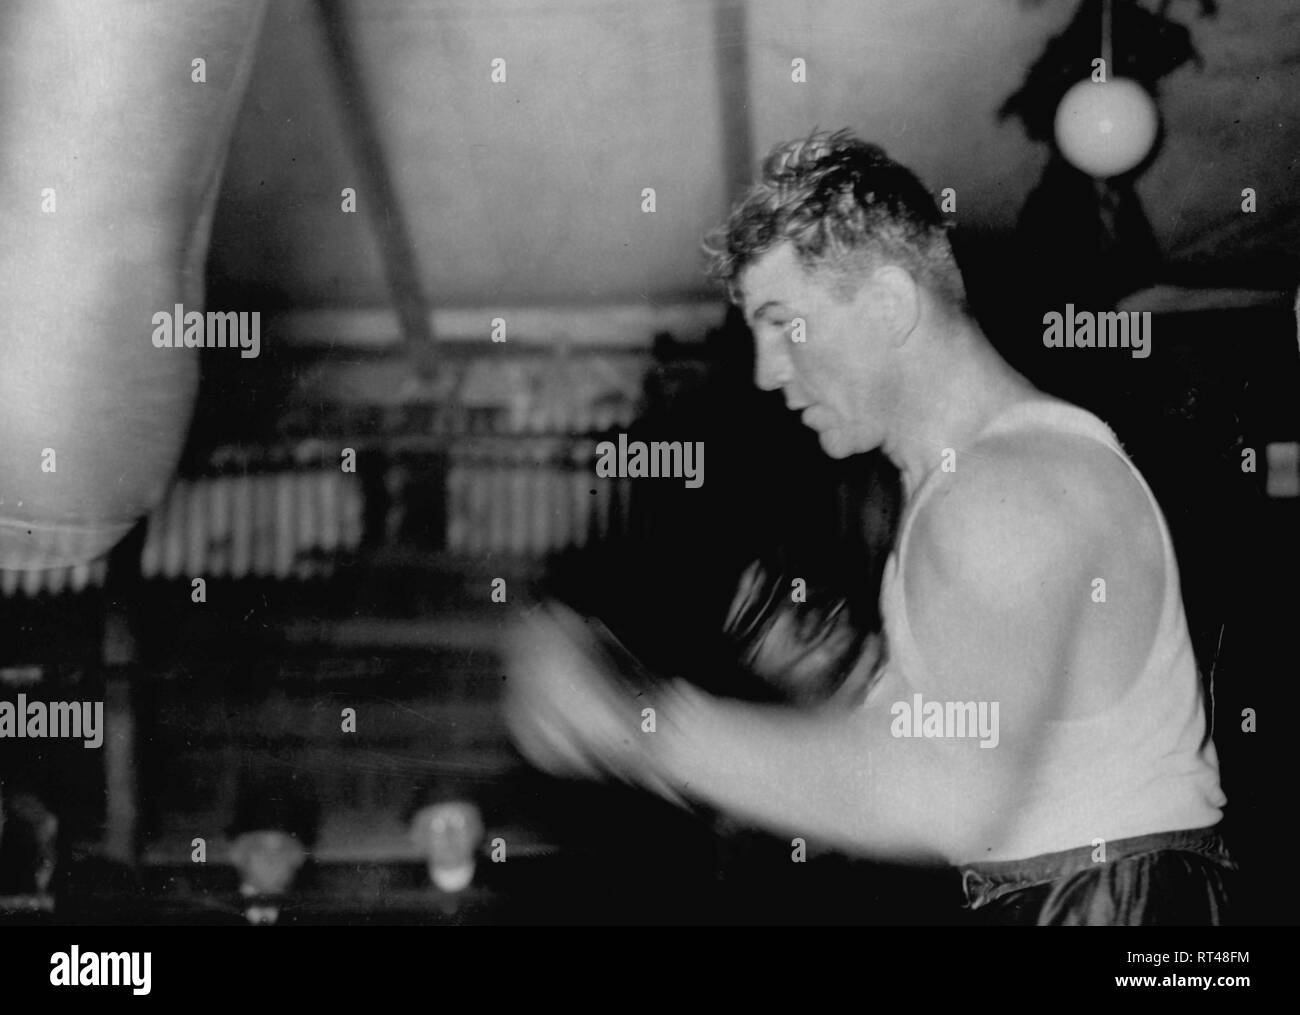 Dudas, Steve, 2.7.1913 - 8.3.1999, American boxer, during preparation for the boxing match against Max Schmeling, training camp near Hamburg, March 1938, Additional-Rights-Clearance-Info-Not-Available - Stock Image